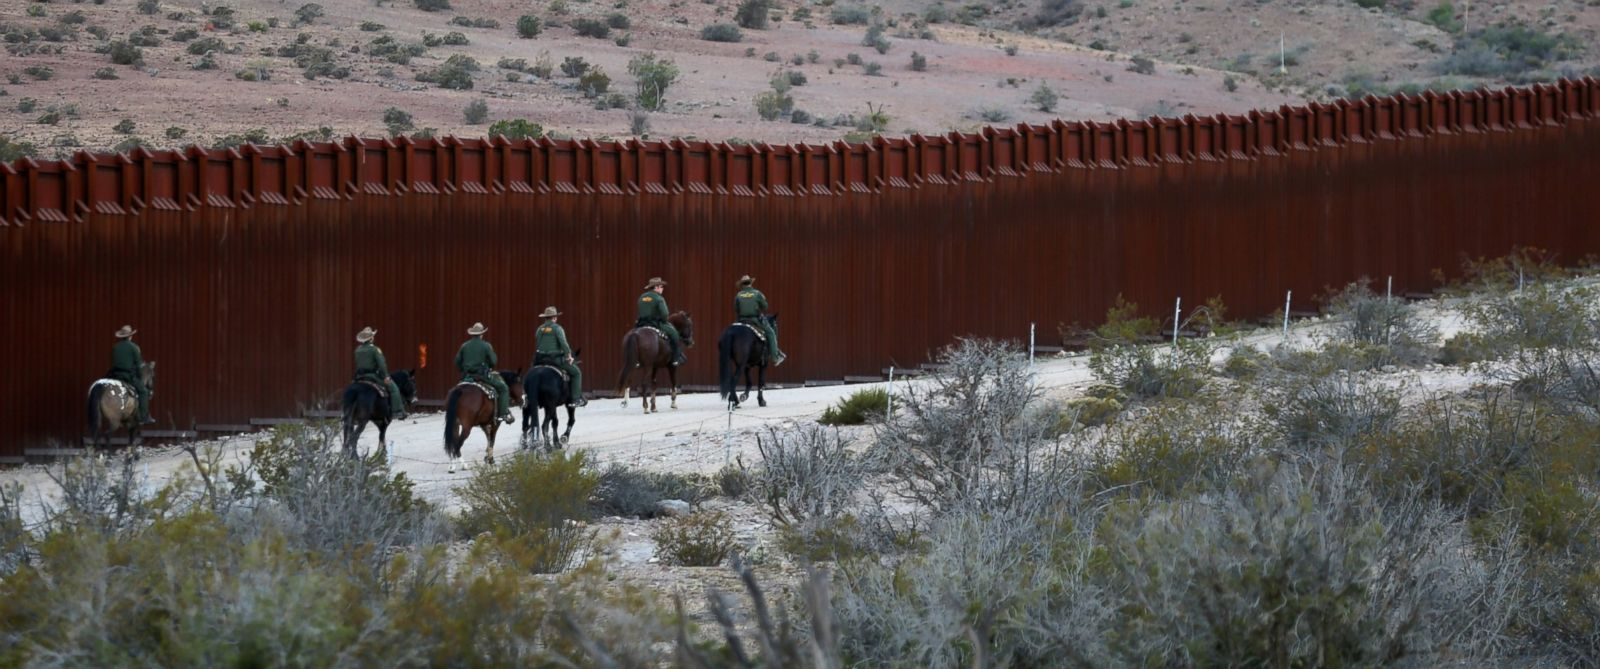 PHOTO: U.S. Border Patrol agents on horseback head out on patrol along the U.S.-Mexico border fence near Jacumba, California, Nov. 14, 2016.